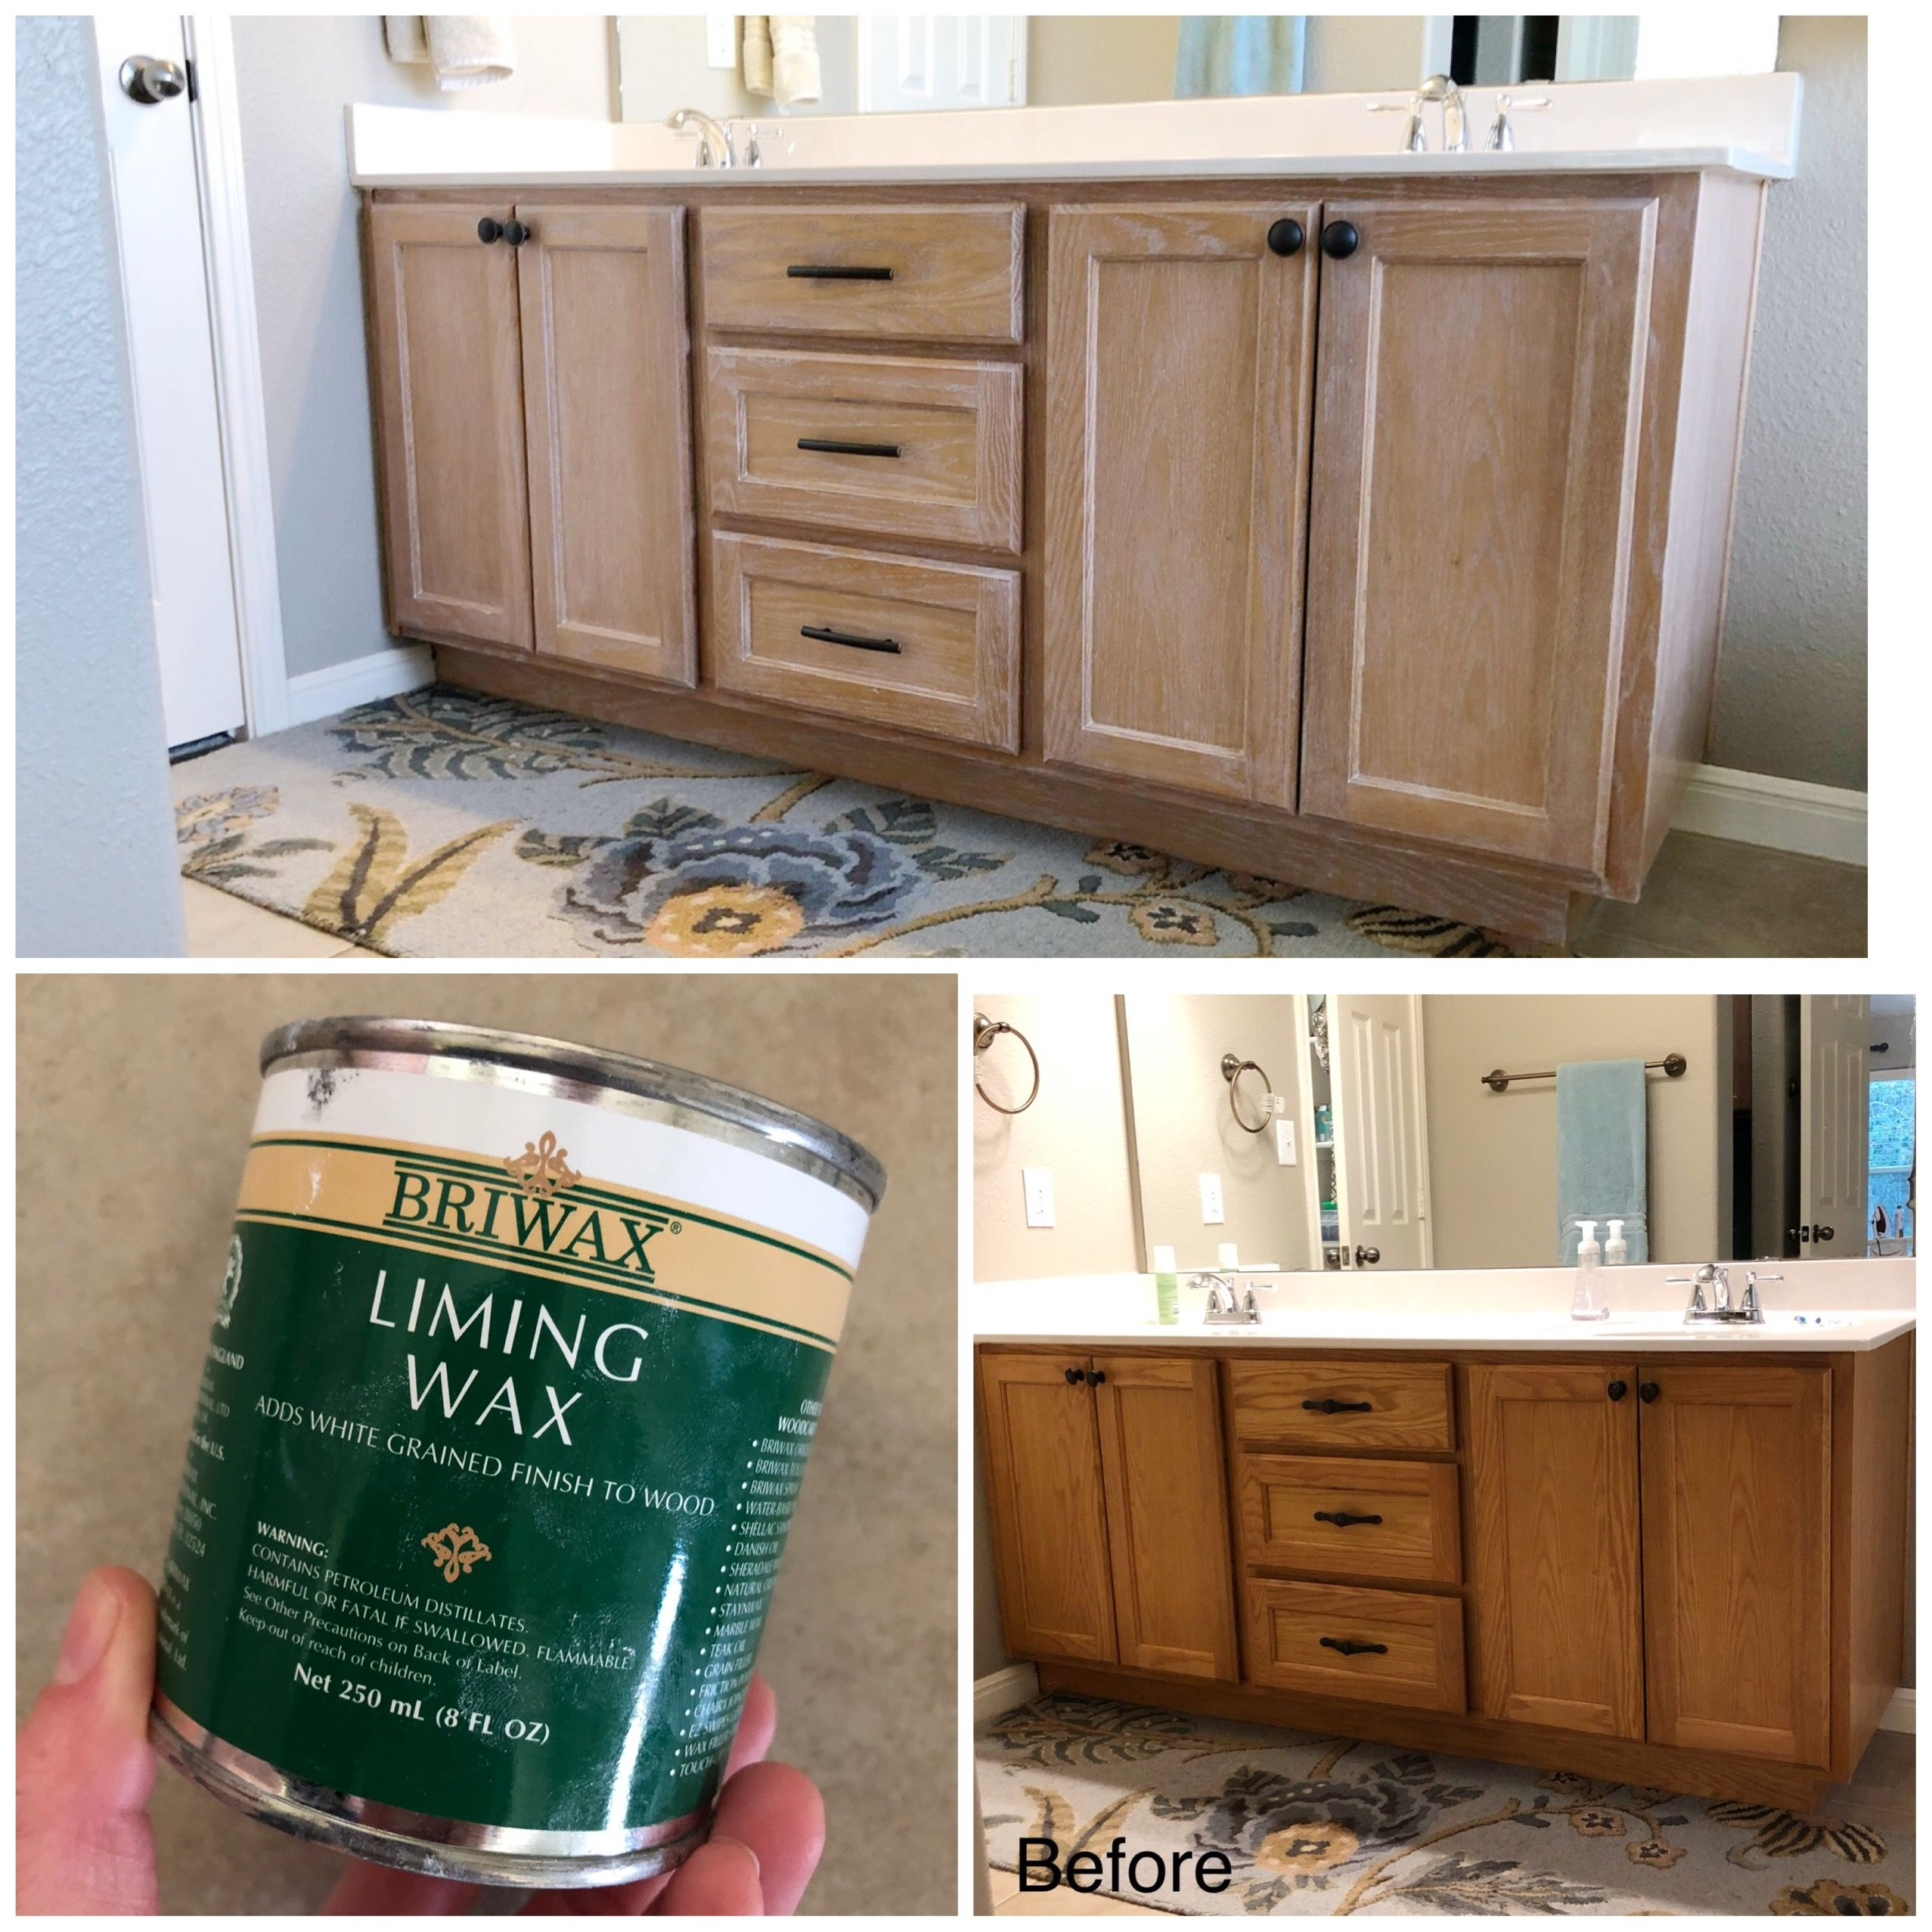 Diy Lime Wax On Honey Oak Cabinets Honey Oak Cabinets Home Diy Diy Furniture